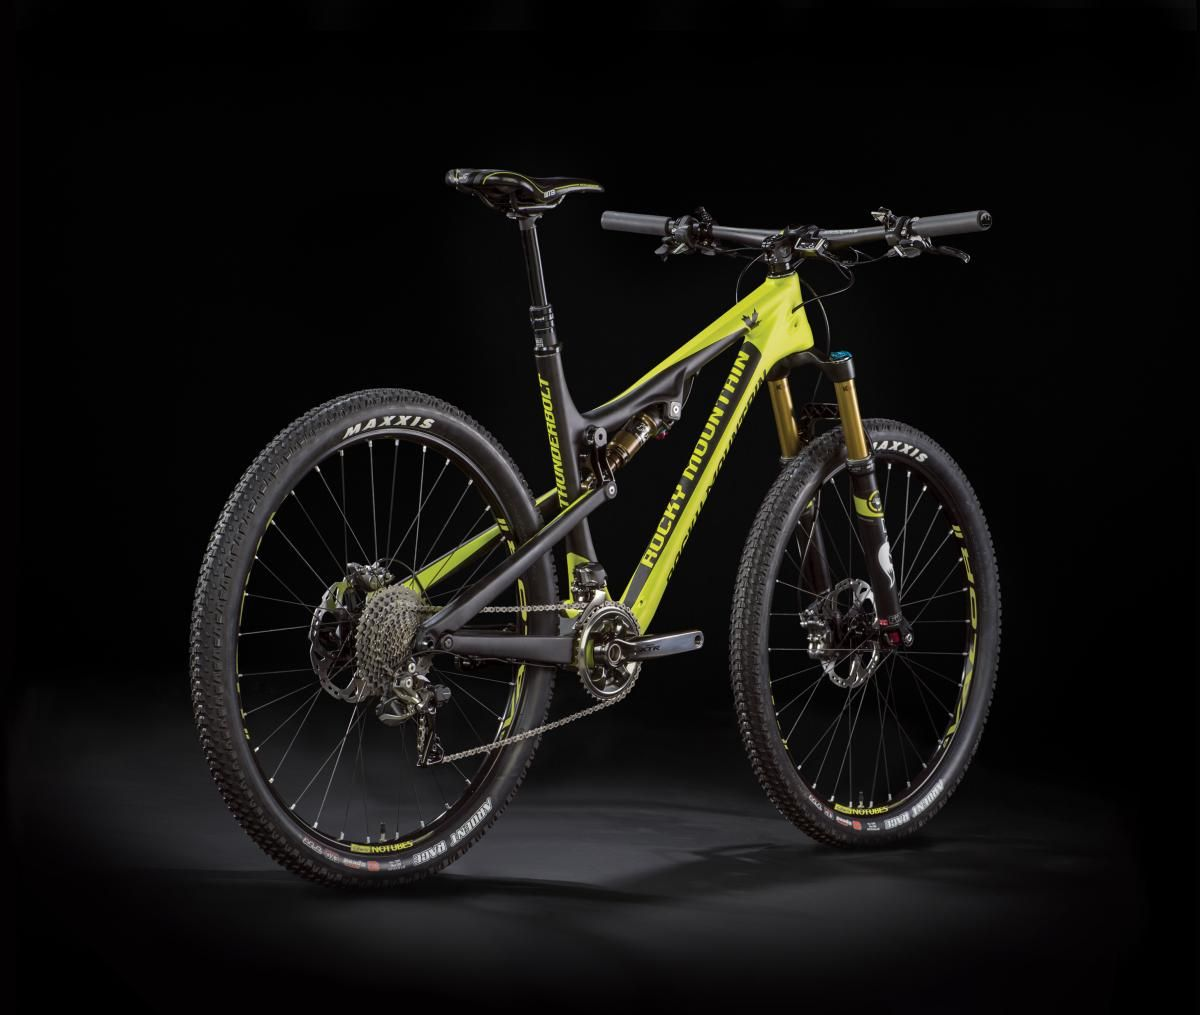 Introducing The 2015 Thunderbolt Msl Rocky Mountain Bicycles